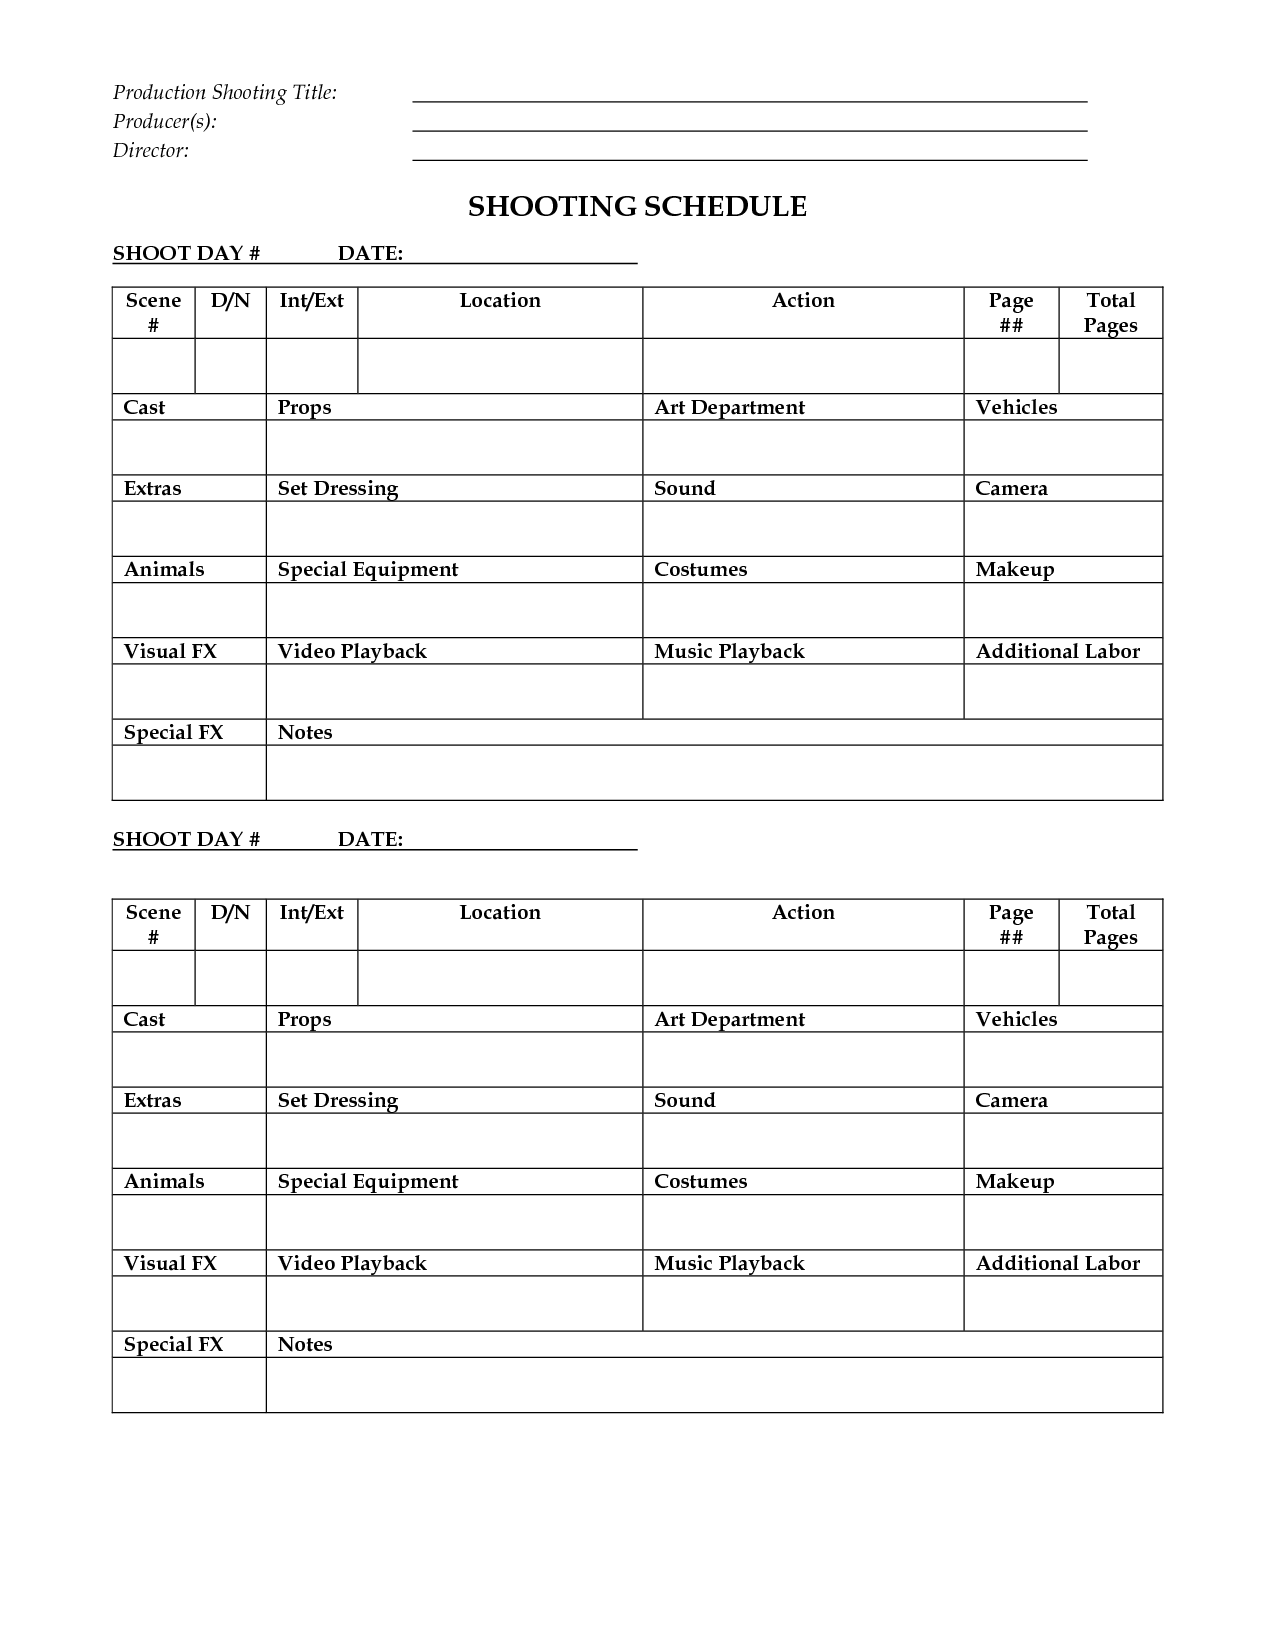 Shooting Schedule Template Videofestivals Get Into A Film